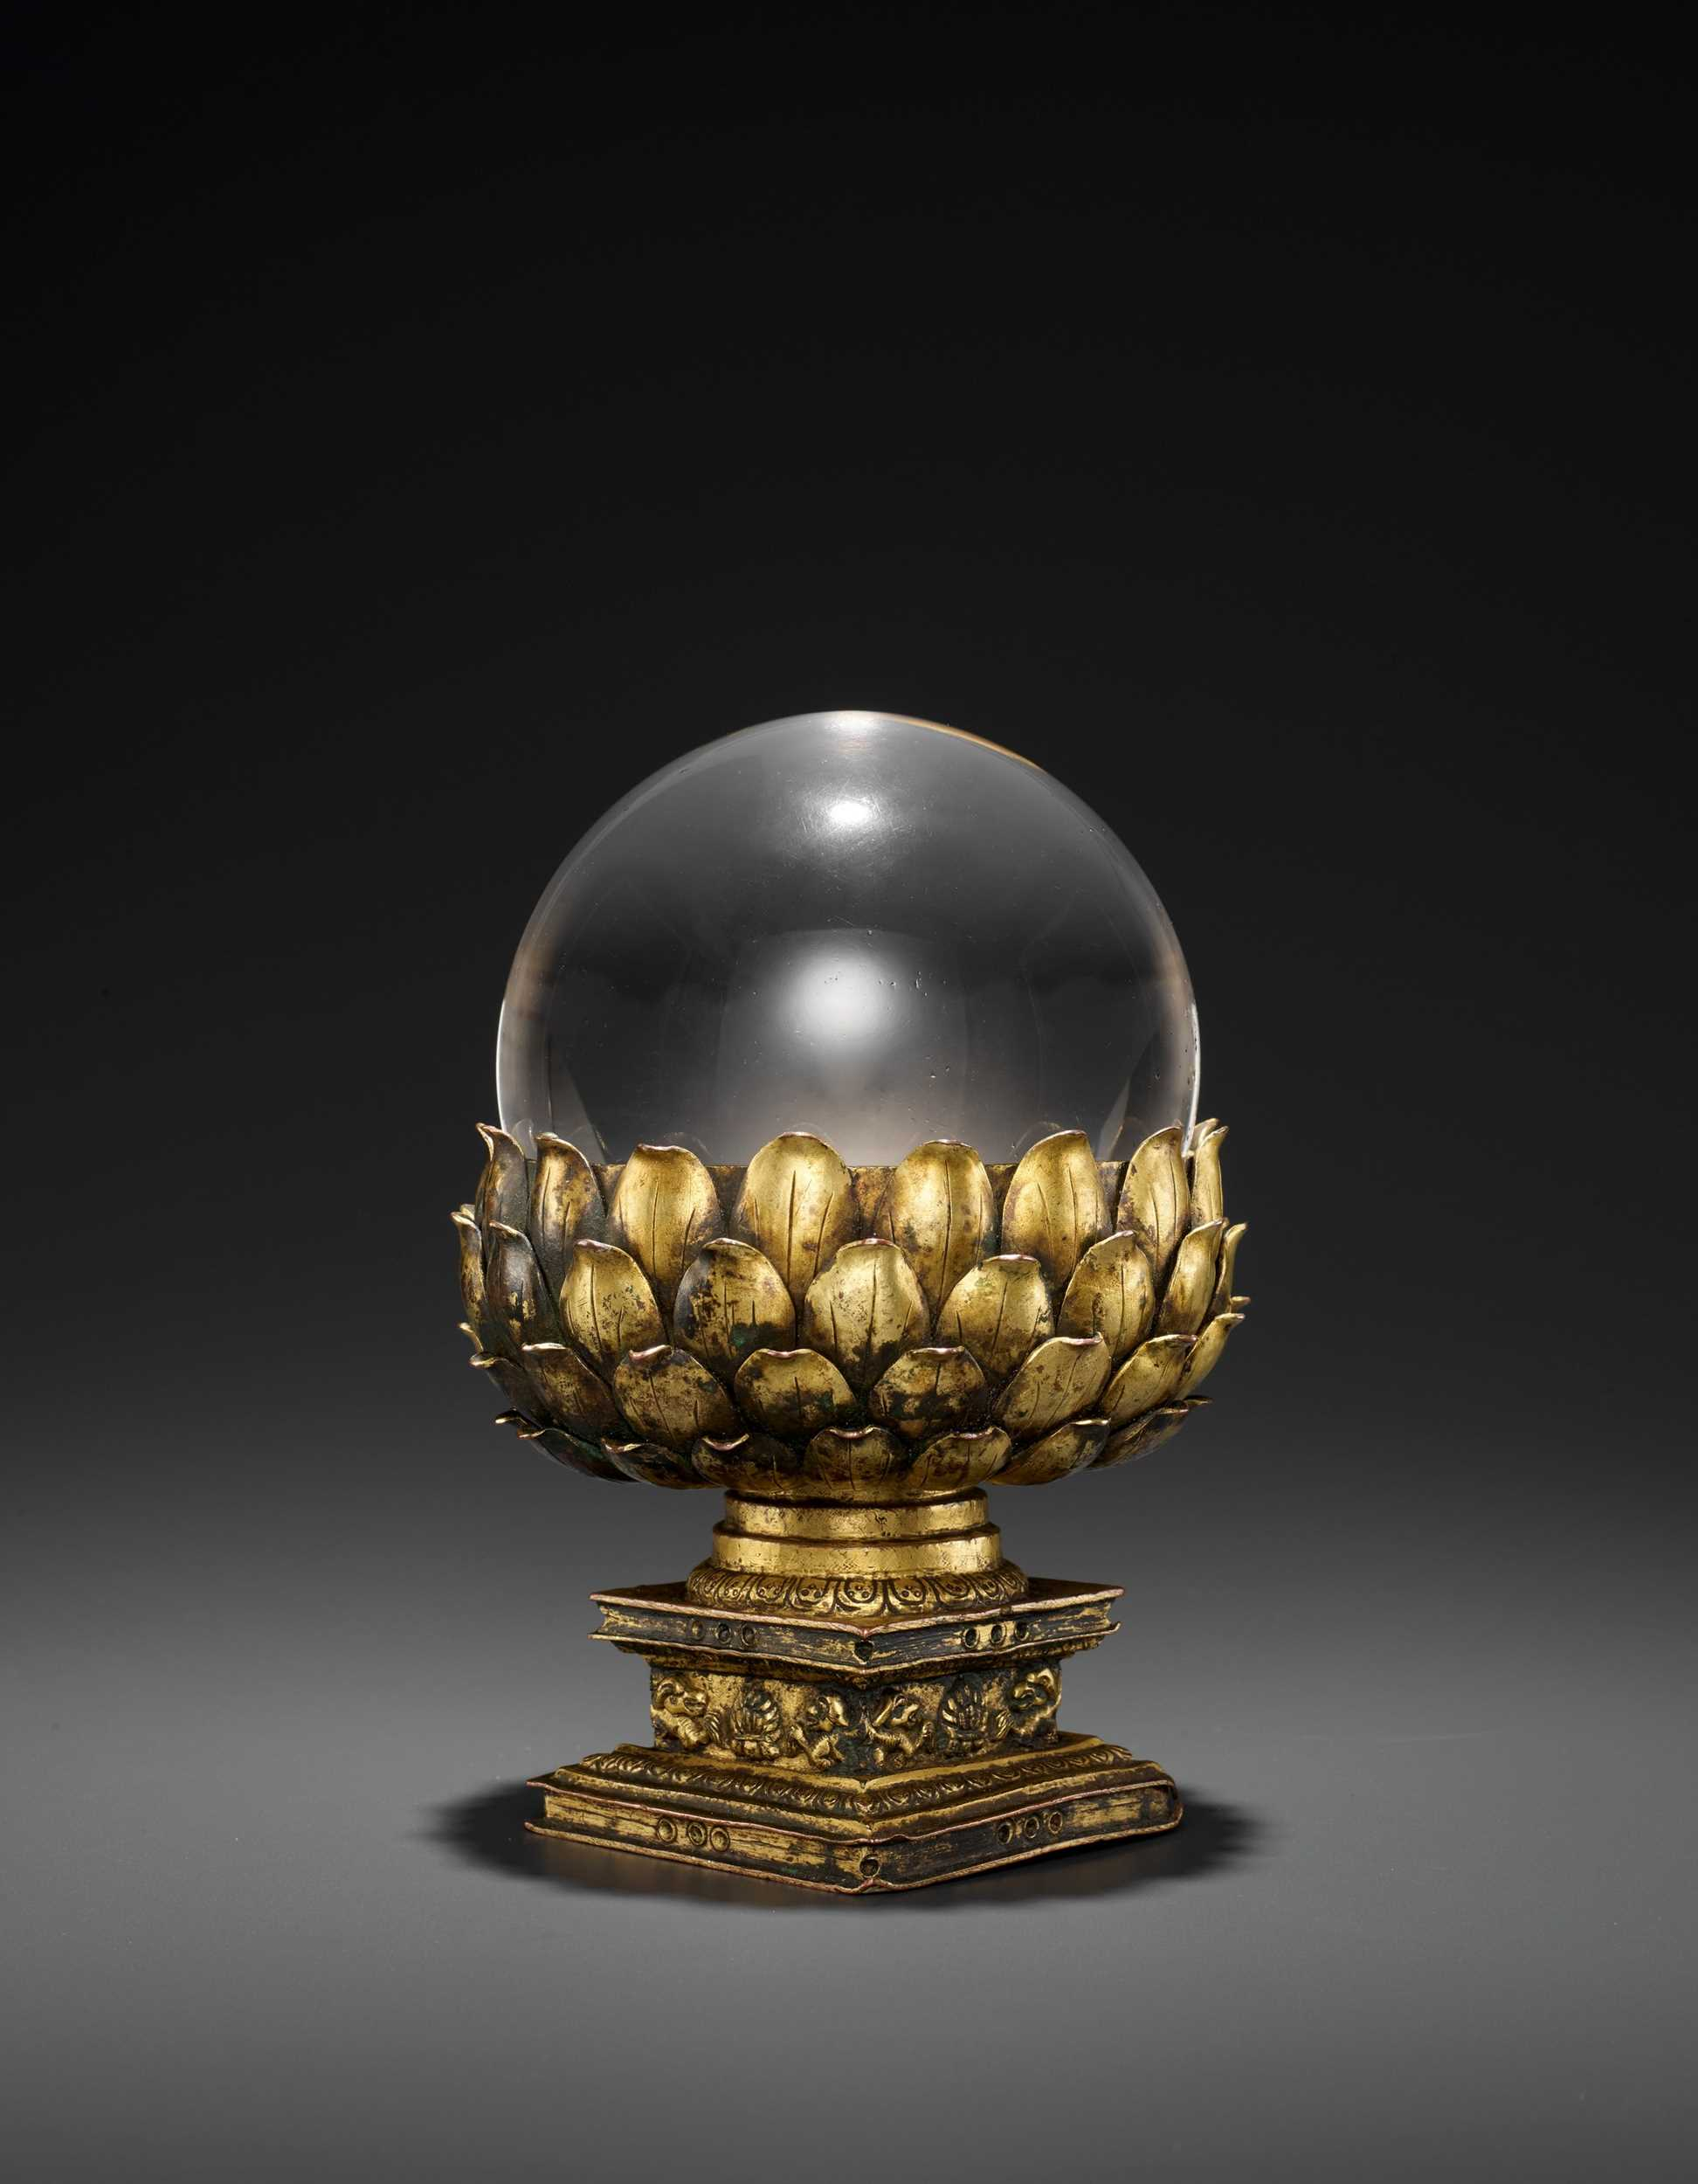 Lot 34 - A ROCK CRYSTAL SPHERE WITH A GILT BRONZE LOTUS BASE, QING DYNASTY